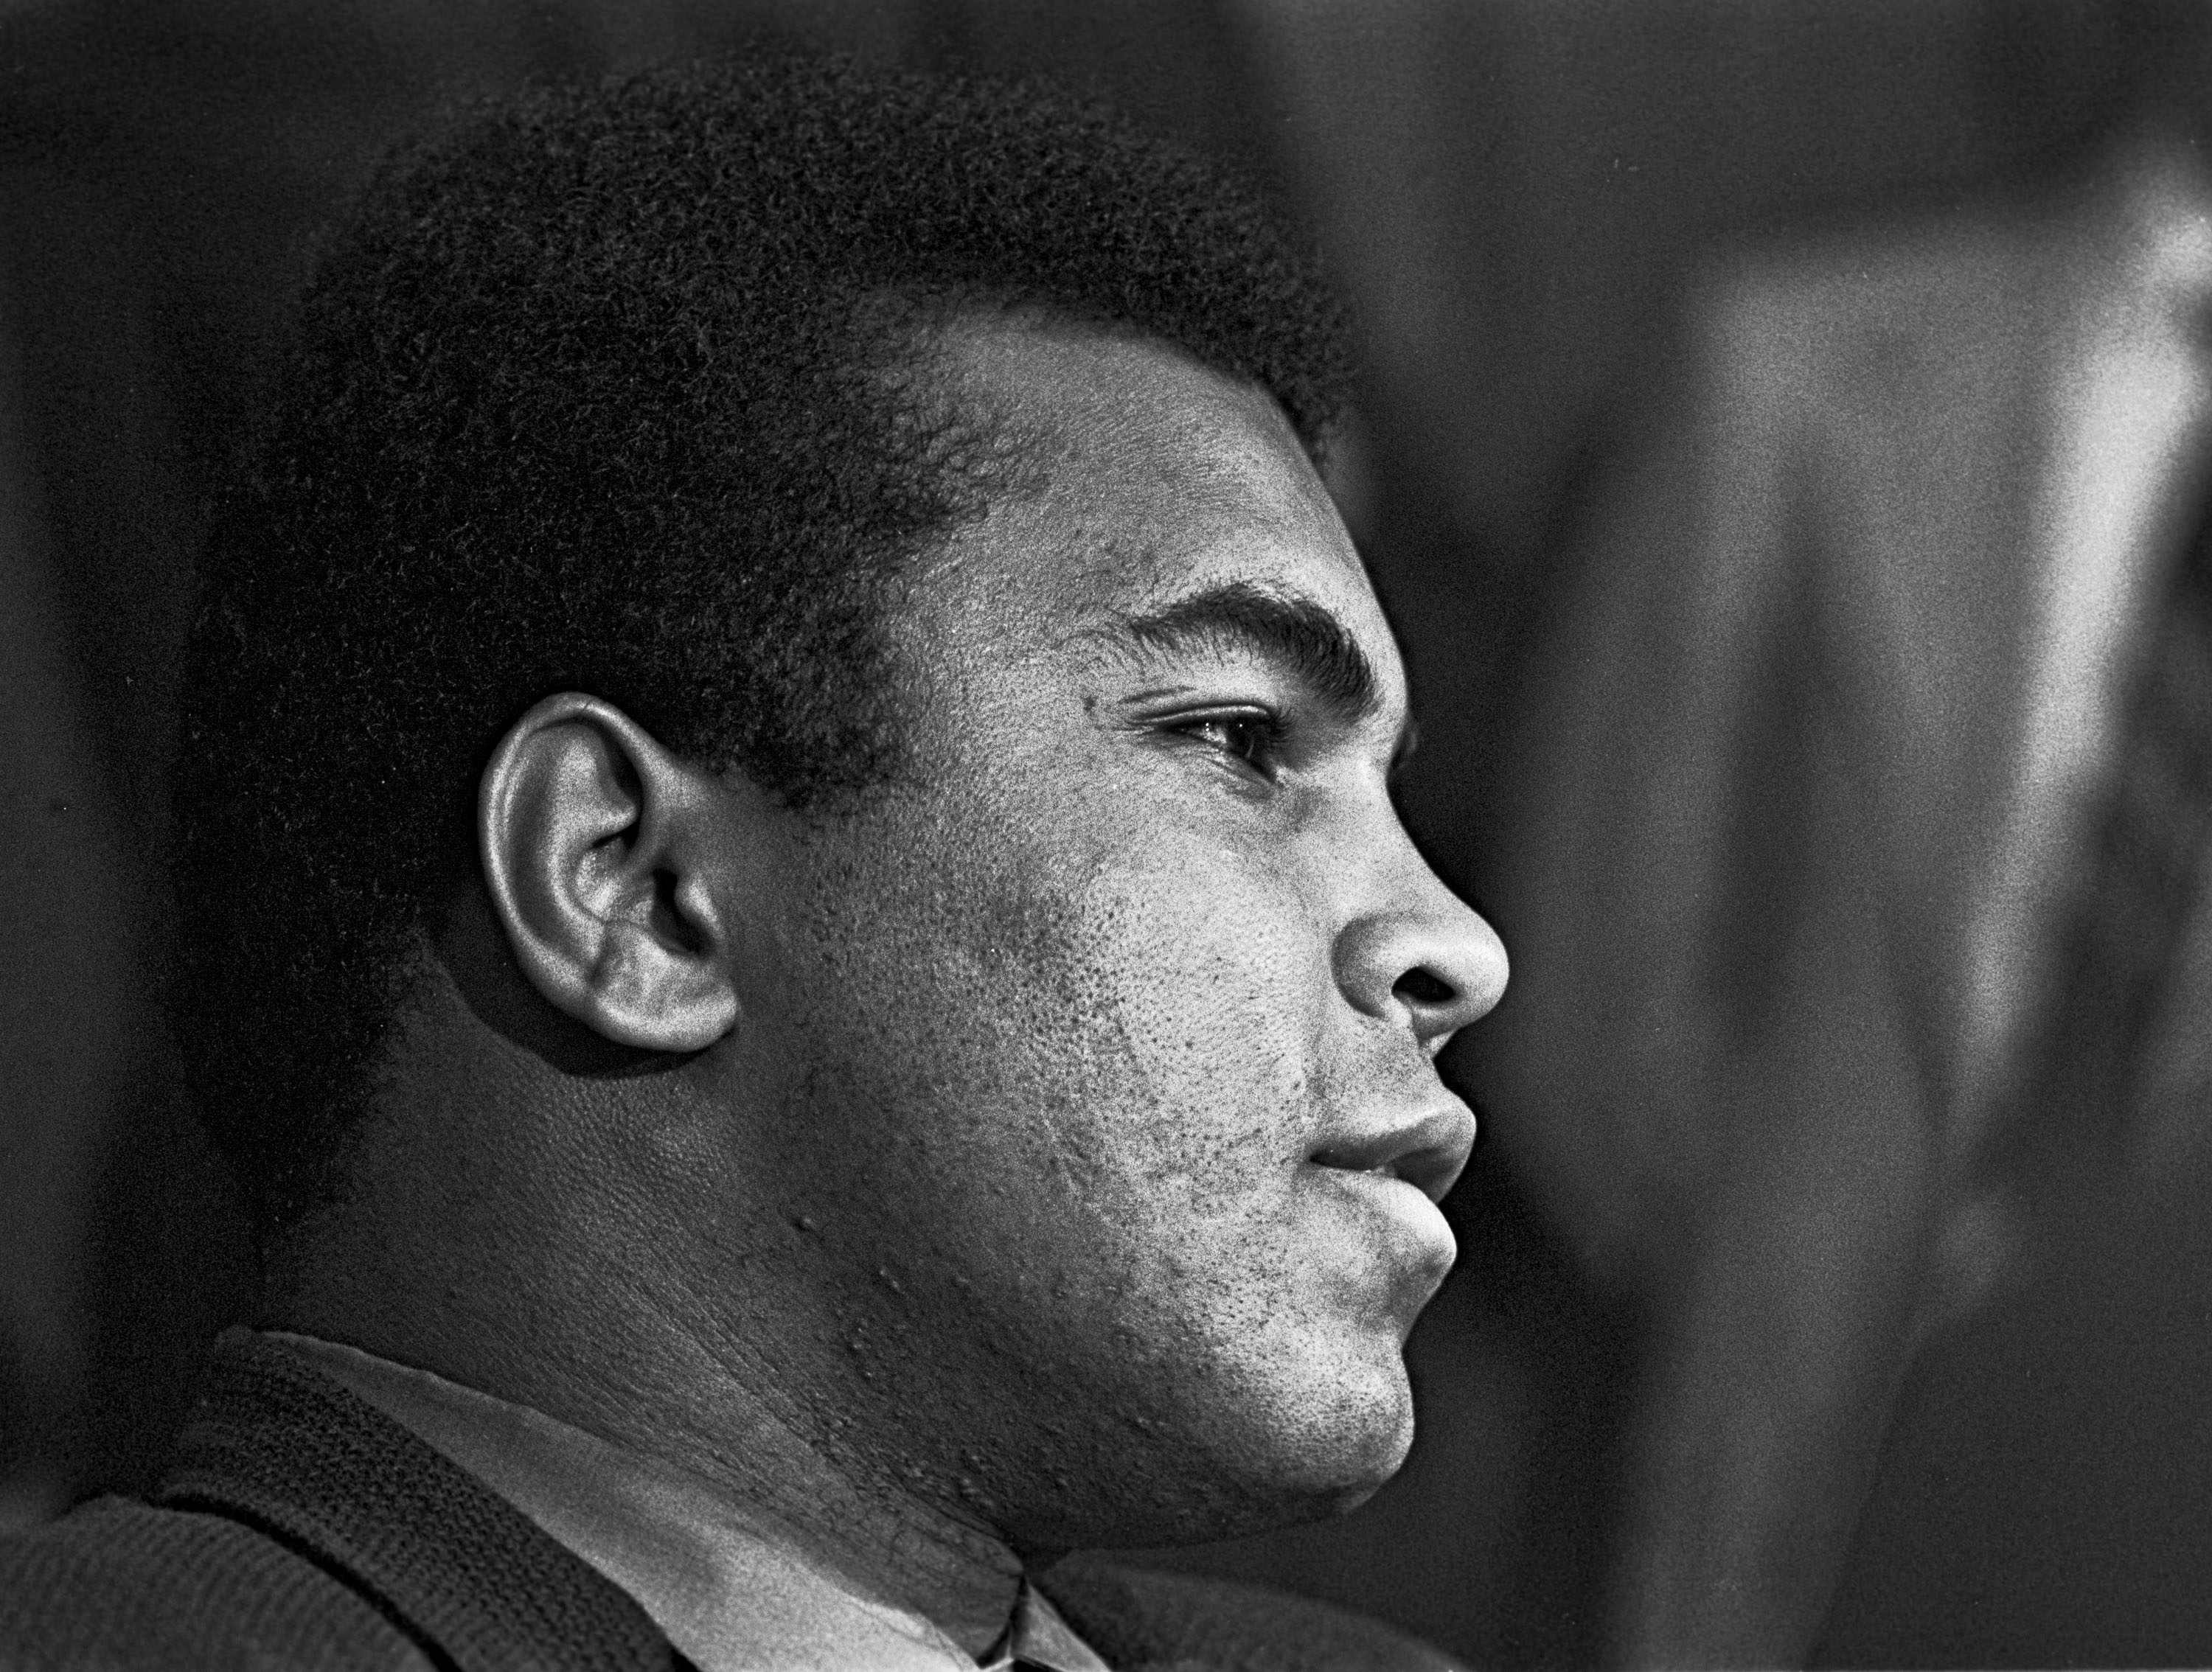 May 18, 1971 - Modesto, California, United States: Sportsmen of Stanislaus Club invited Muhammad Ali to speak in Modesto. In the past, the SOS Club had hosted other boxing greats such as Max Baer, Jack Dempsey, Joe Louis, Rocky Marciano and Joe Frazier. One month later in June of 1971, the Supreme Court ruled in favor of Ali on the issue of his draft evasion conviction, clearing the way for him to box and eventually regain his title. SOS was a male-only organization at that time and charged $5.00 per dinner ticket., Image: 175186988, License: Rights-managed, Restrictions: , Model Release: no, Credit line: Profimedia, Polaris